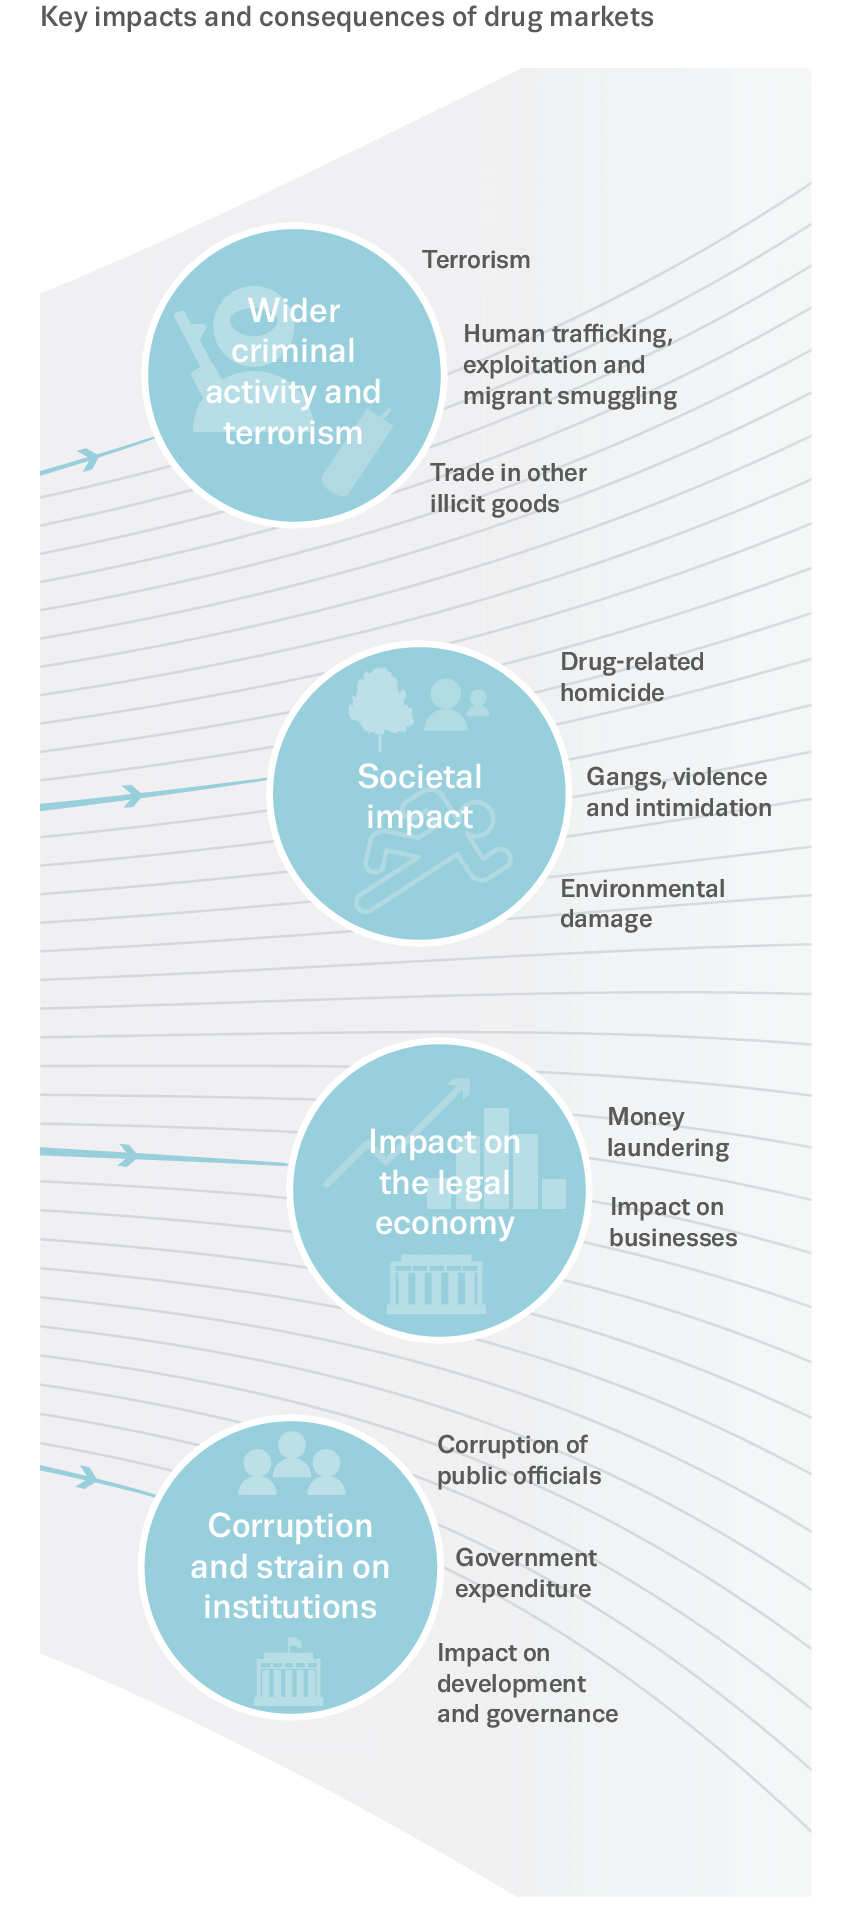 Conceptual graphic showing key impacts and consequences of drug markets